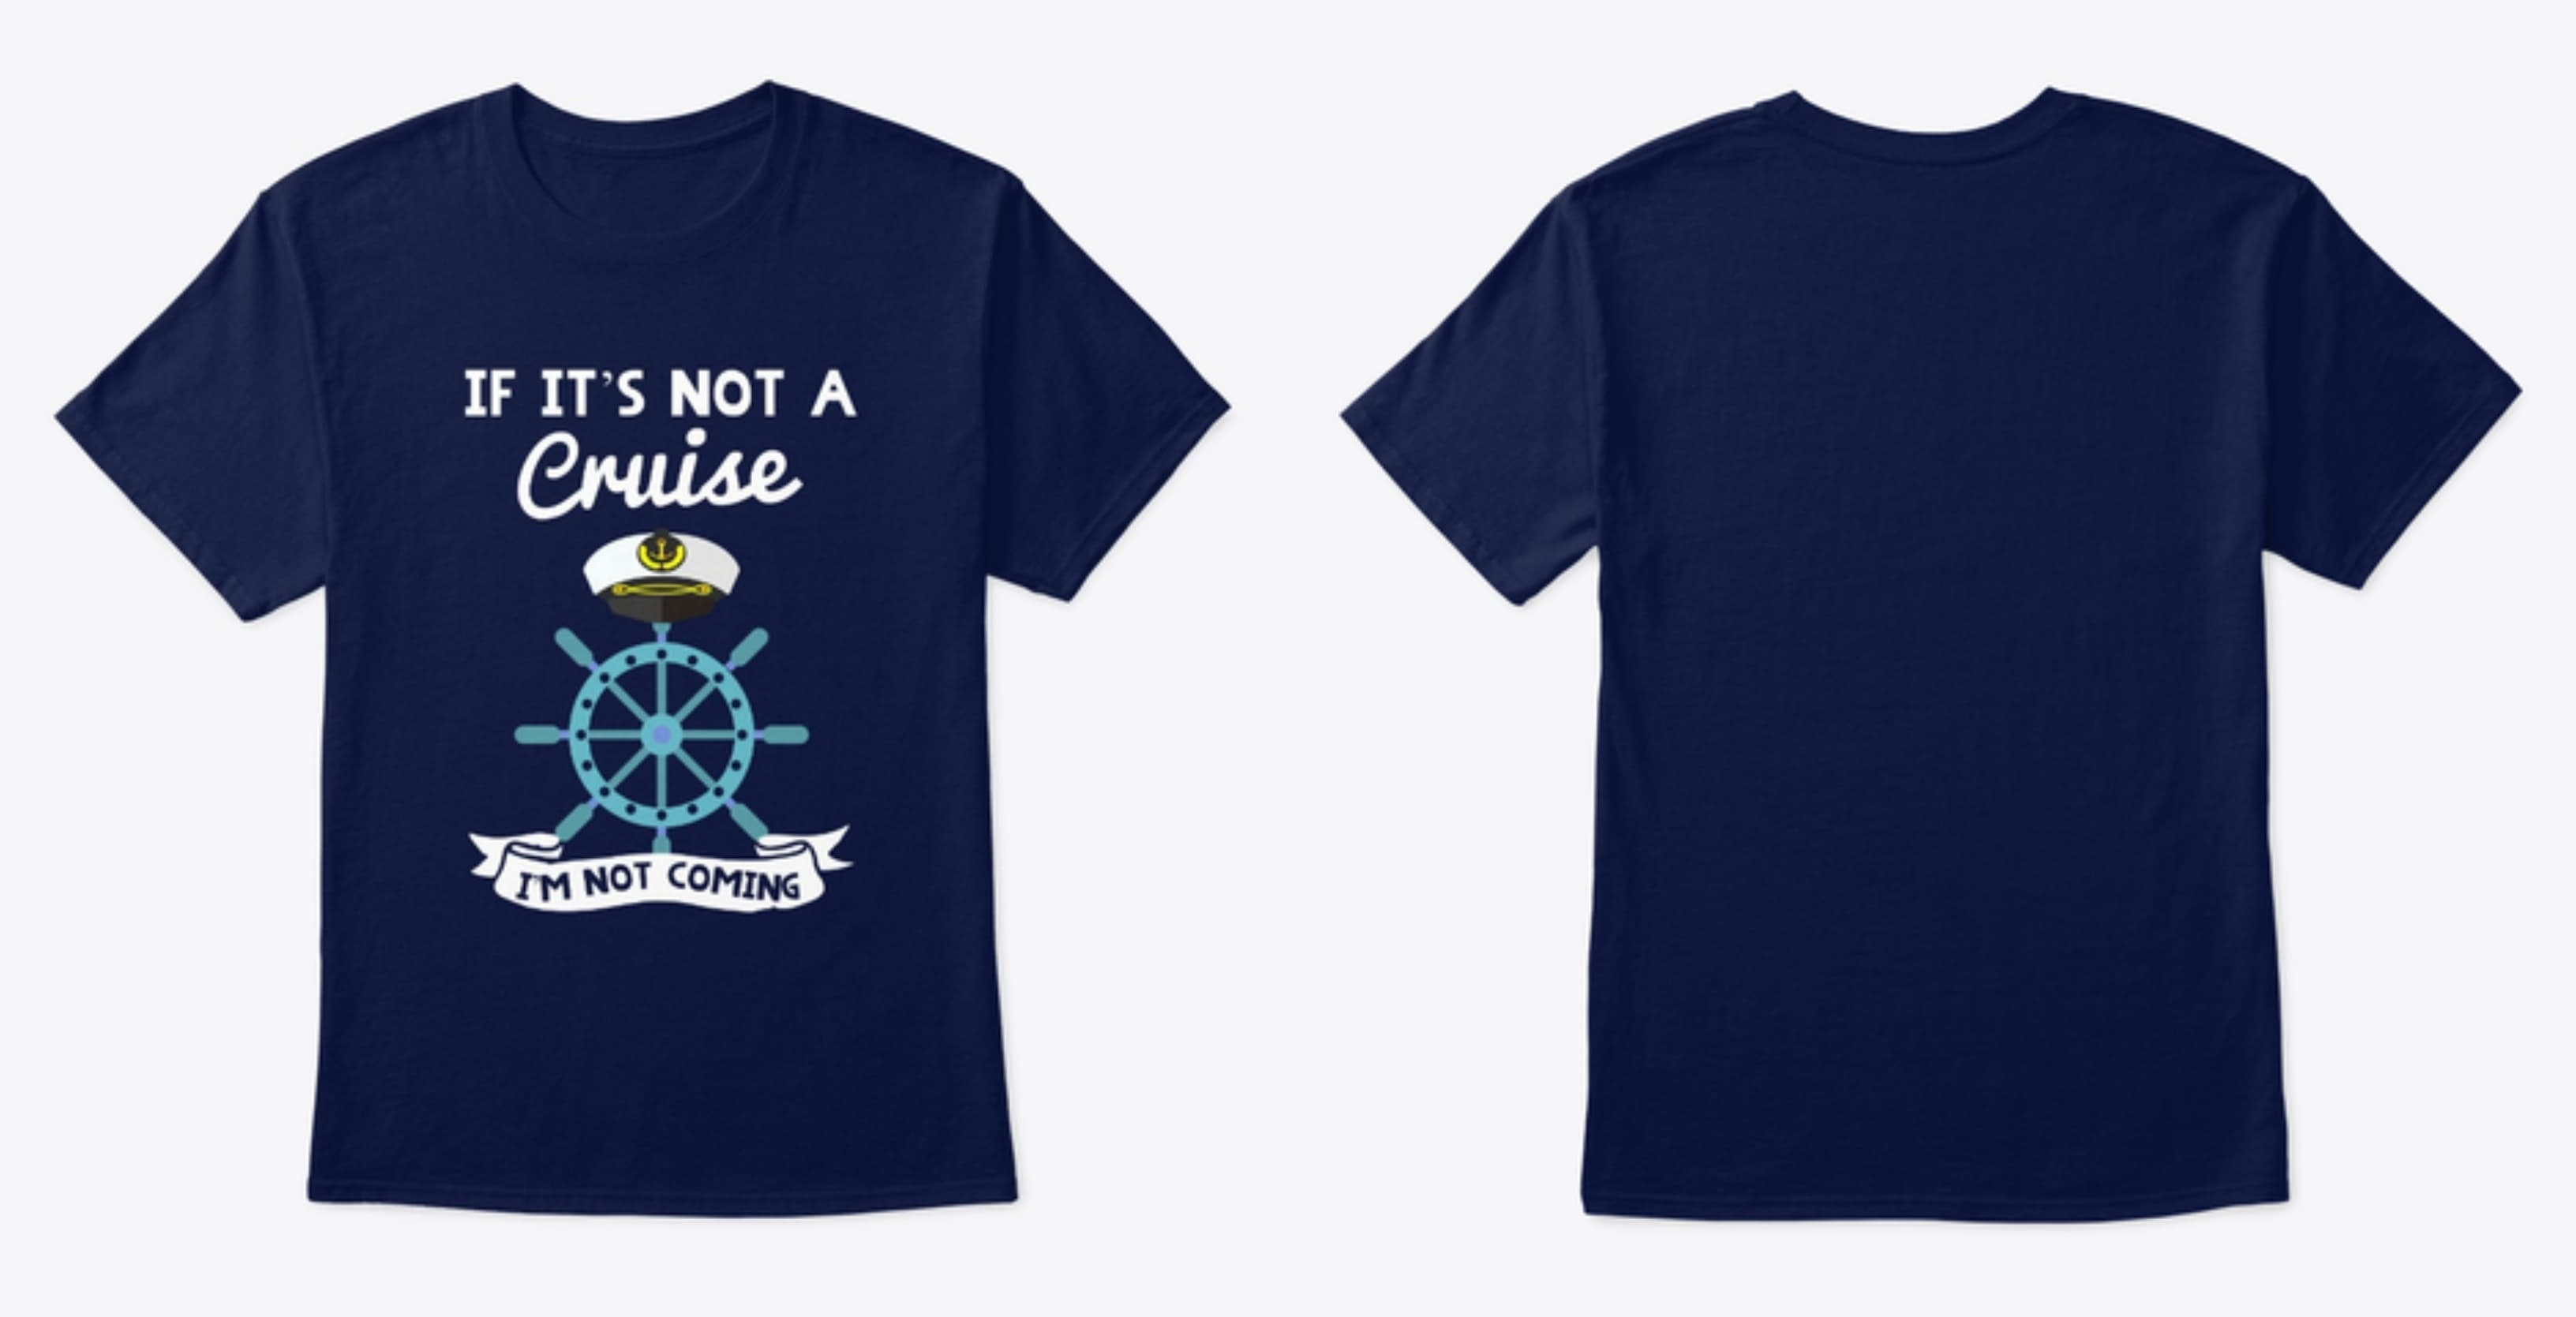 Funny Cruise Tshirt. If it's not a cruise I'm not coming.